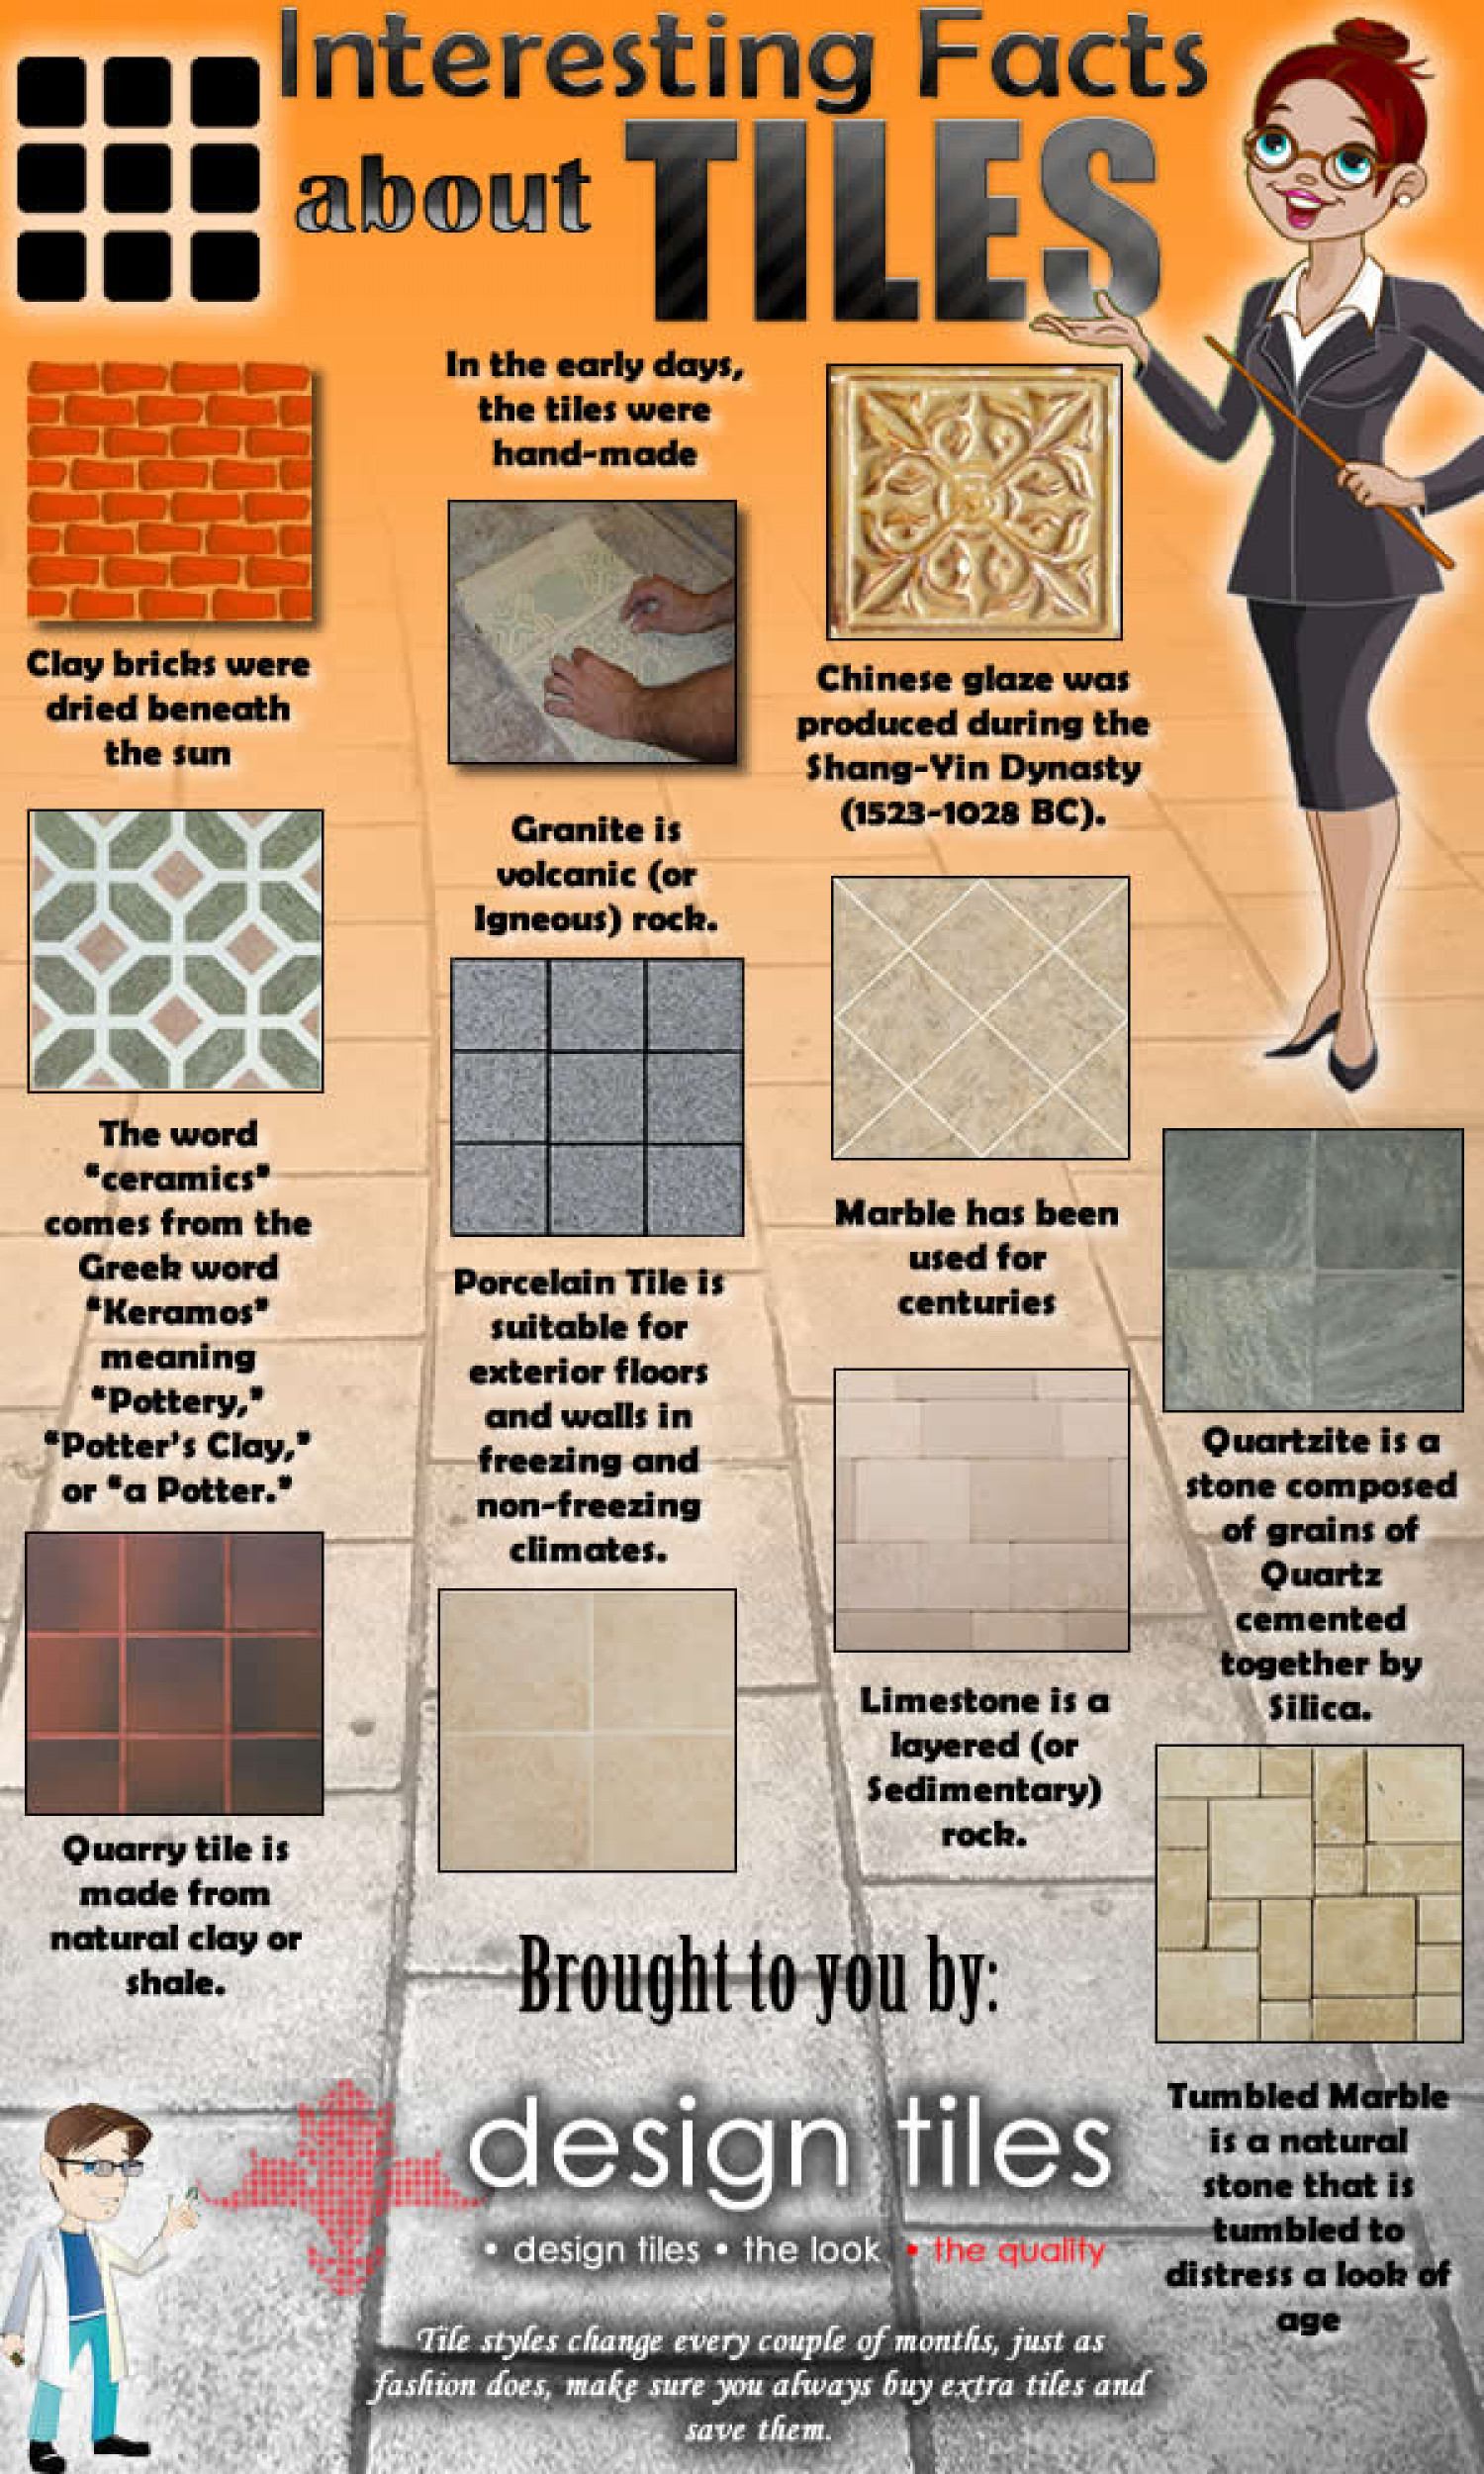 Interesting Facts About Tiles Infographic